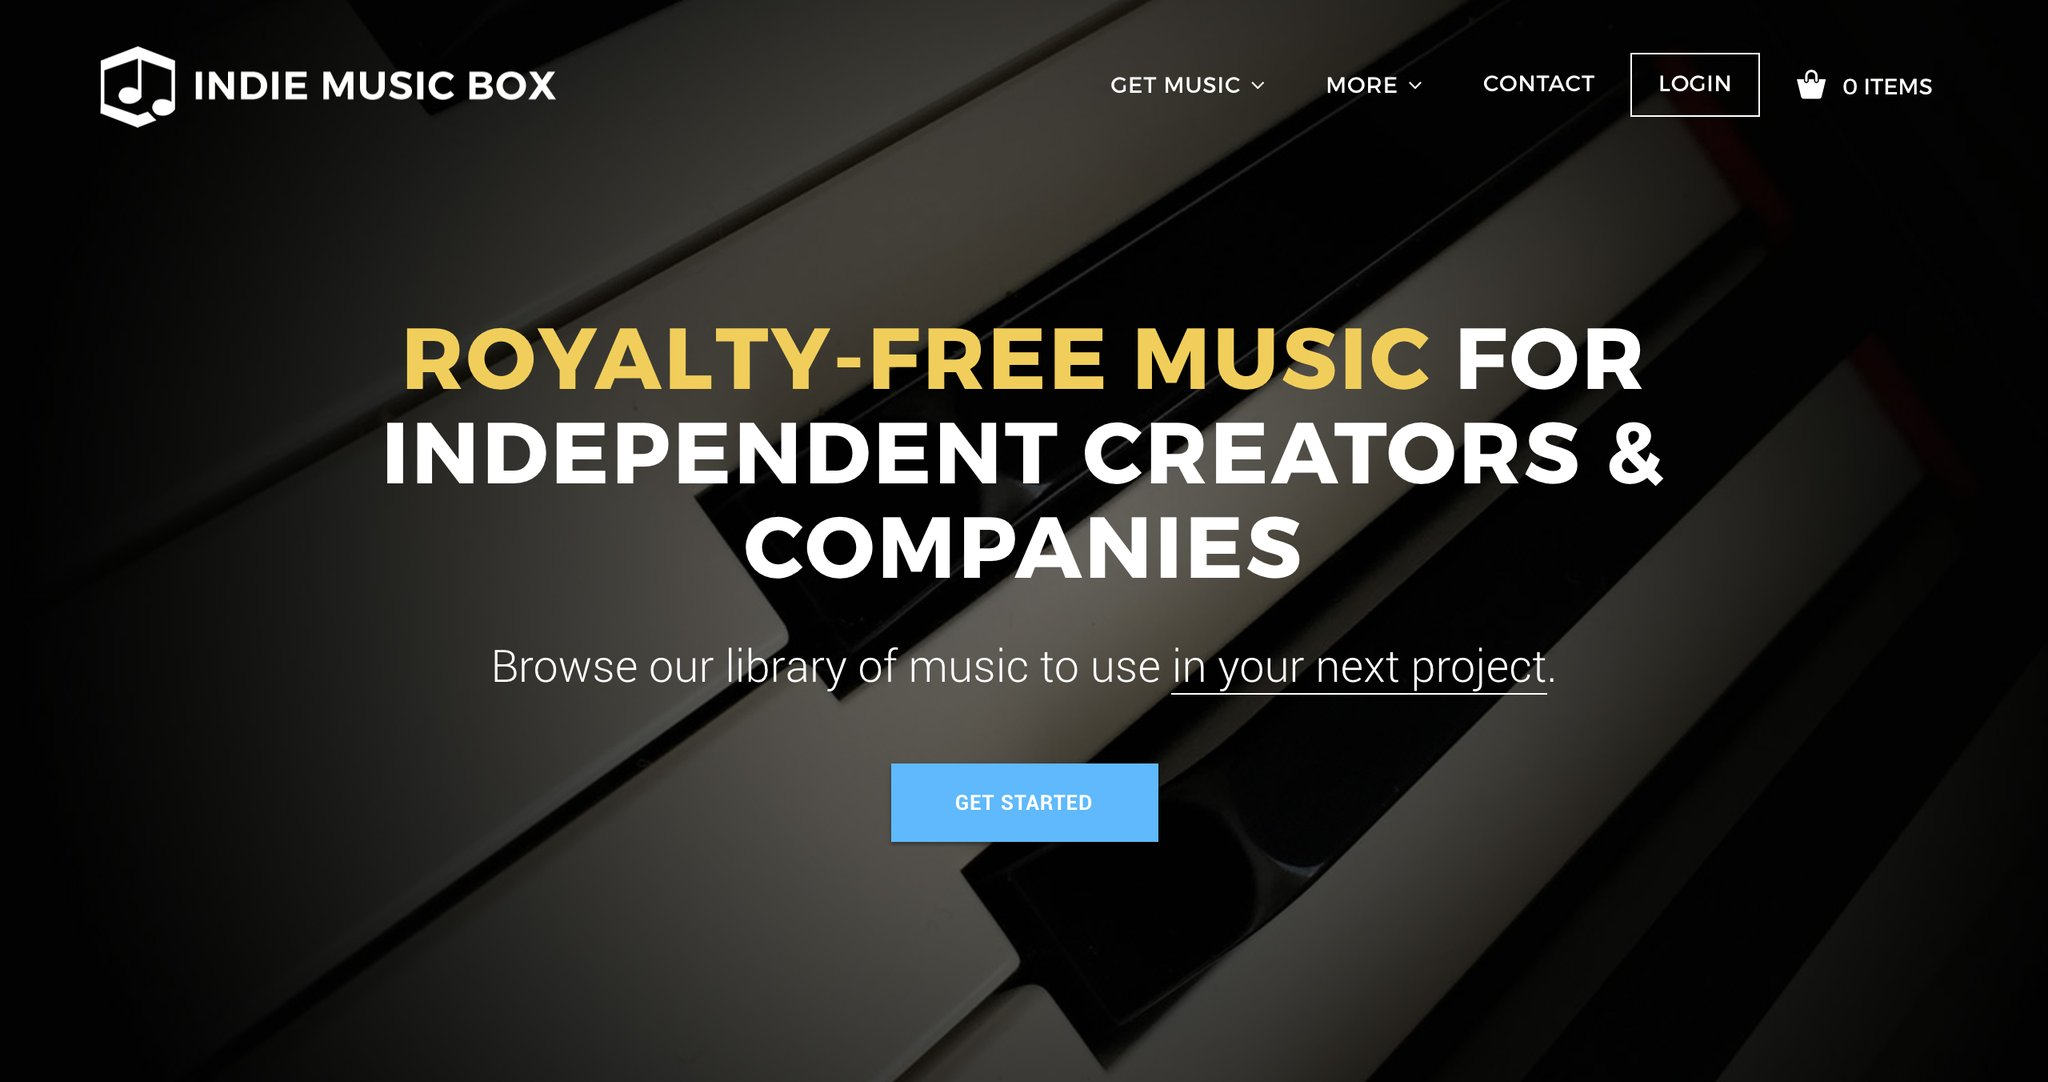 Welcome to Our New Website - A Wonderland of Royalty-Free Music for Independent Creators and Companies!